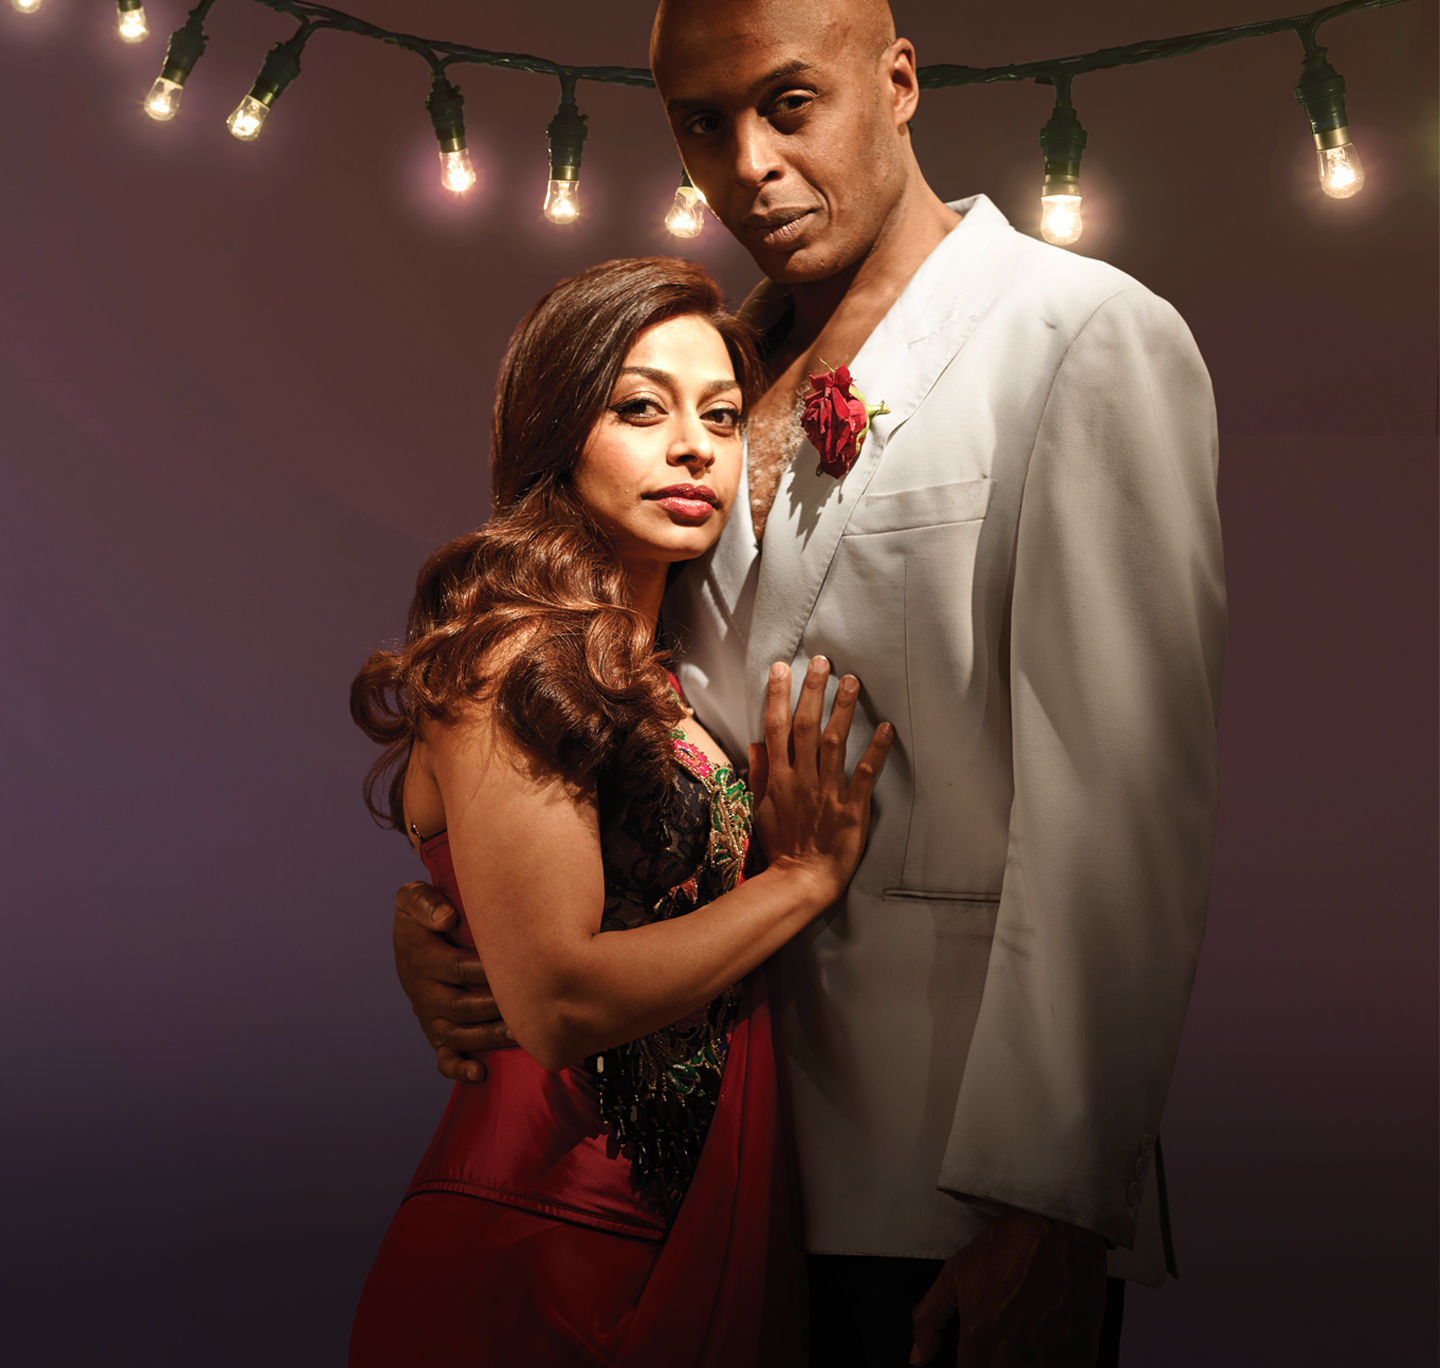 Ayesha Dharker in a red dress and Chu Omambala in a white suit jacket with no shirt, embrace and look at the camera